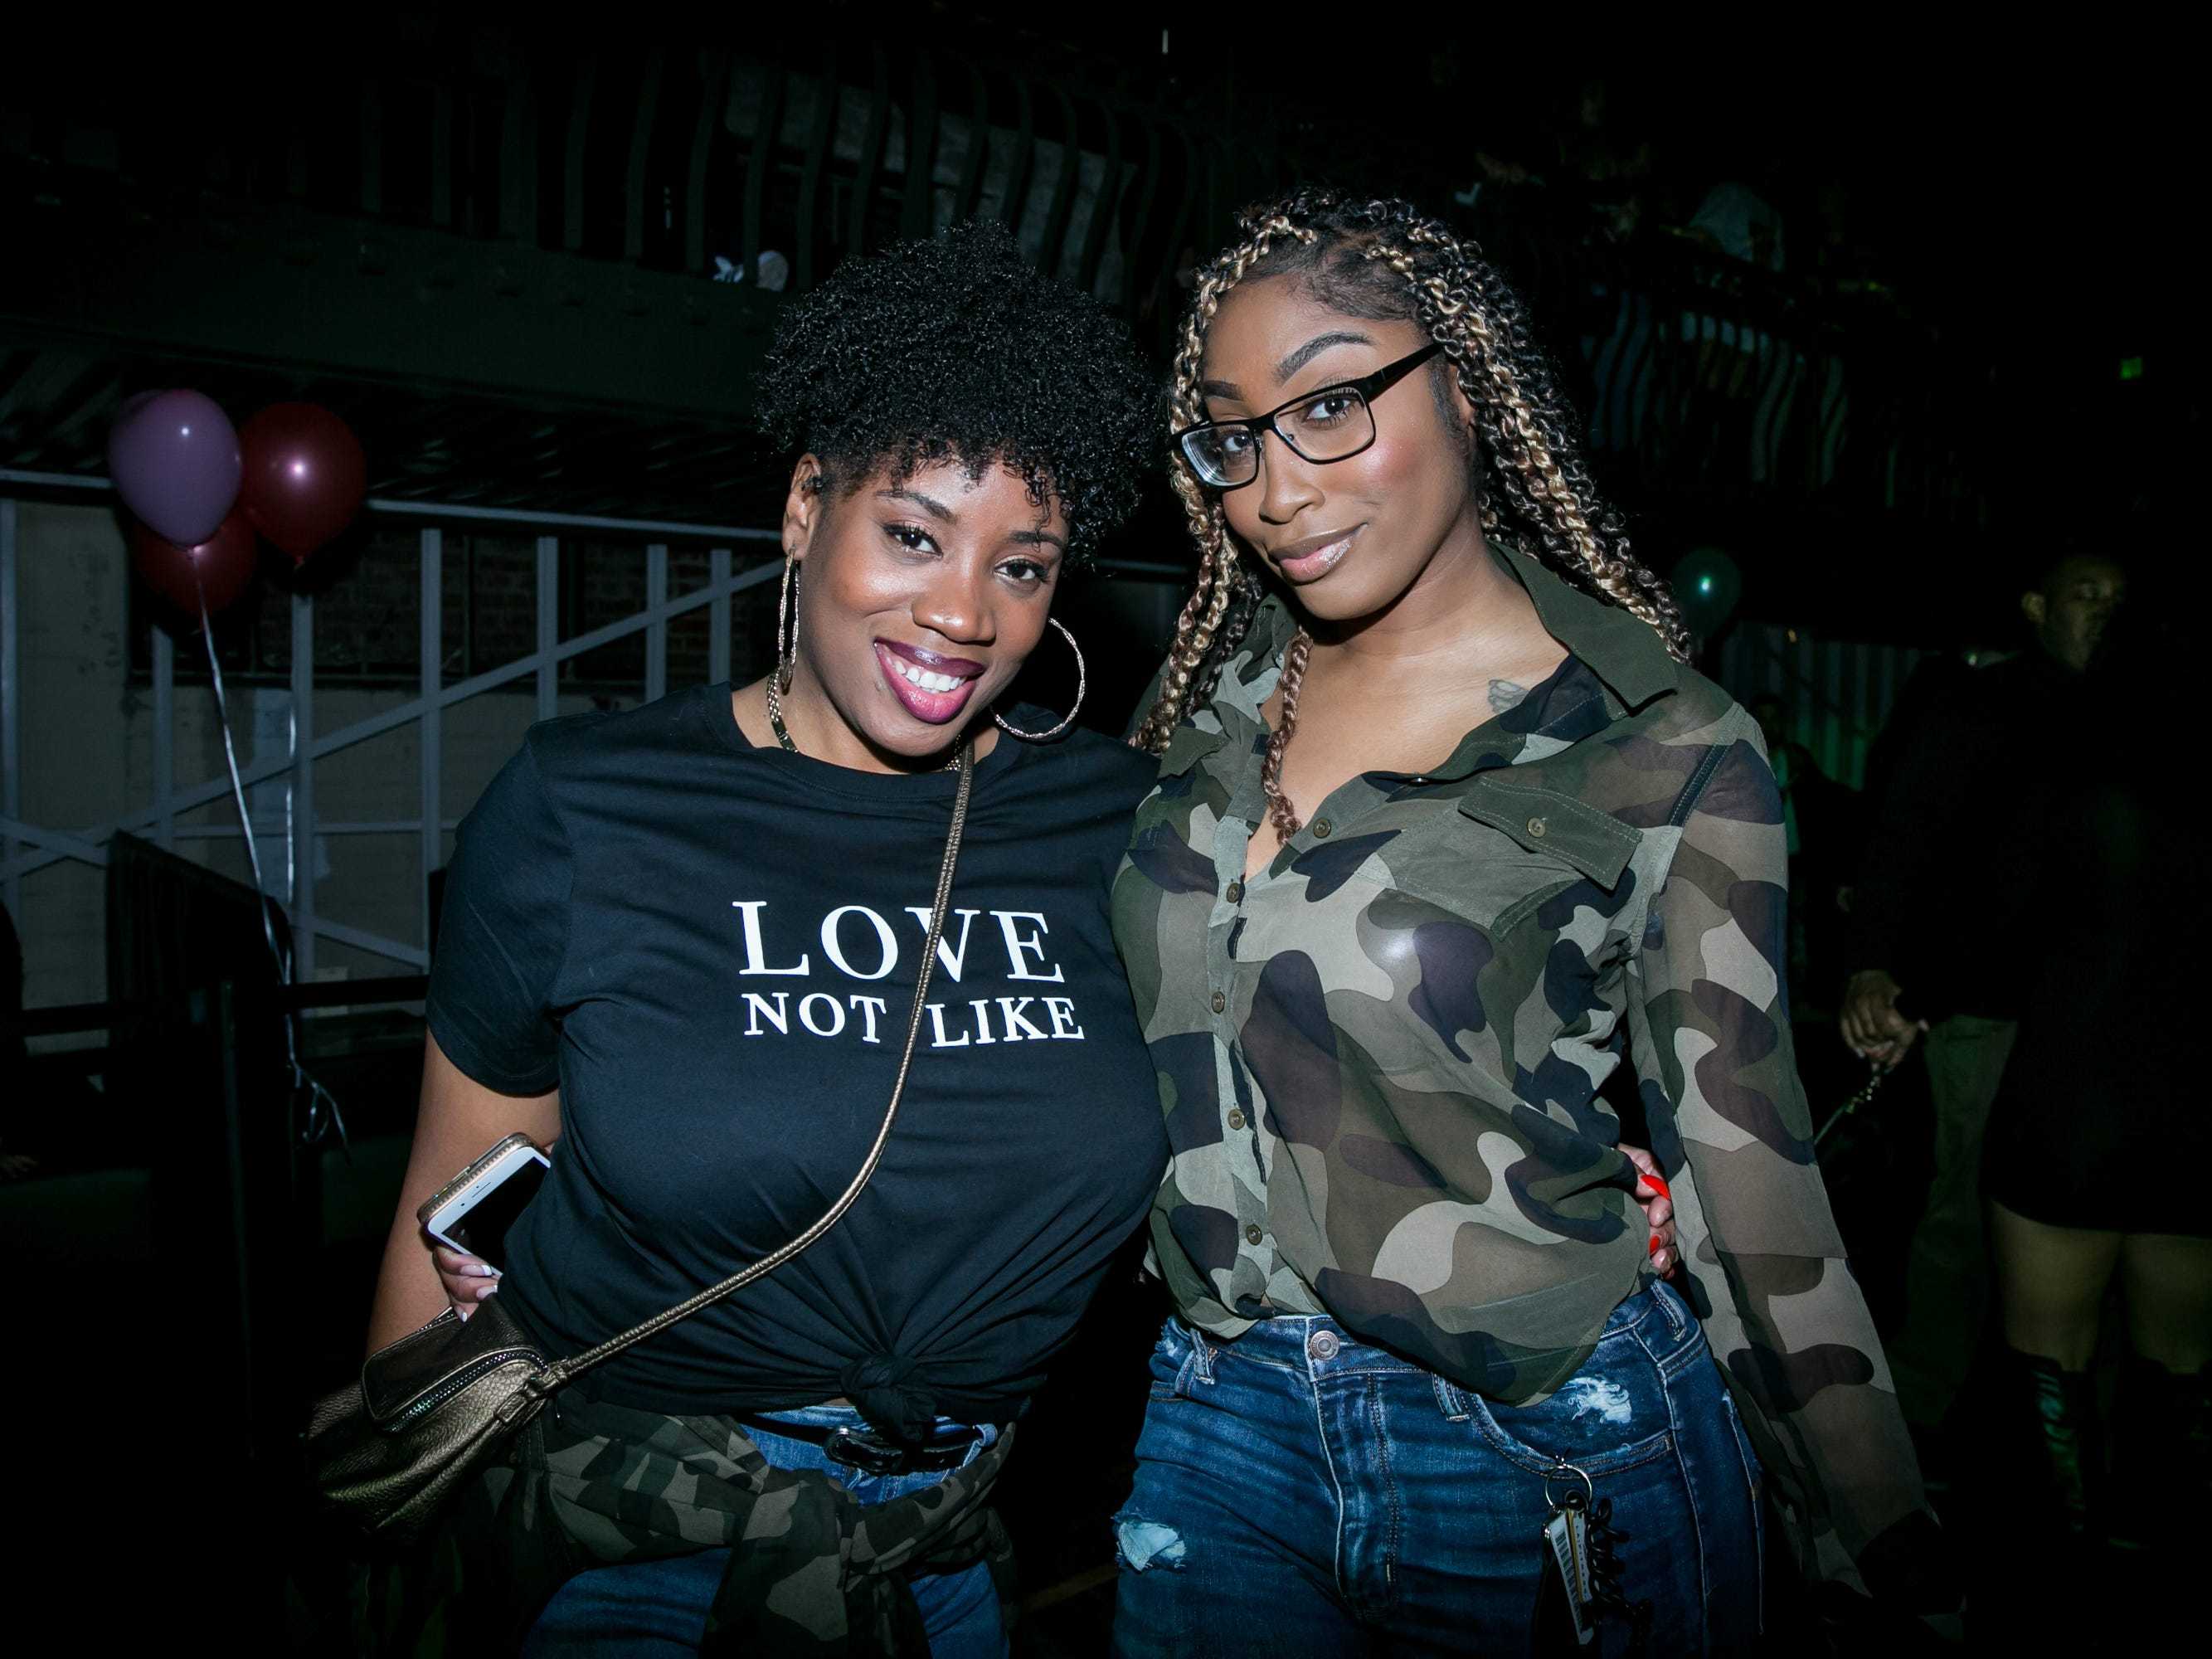 None of the love was fake during Drake Night: Fake Real Love at the Van Buren on Feb. 9, 2019.